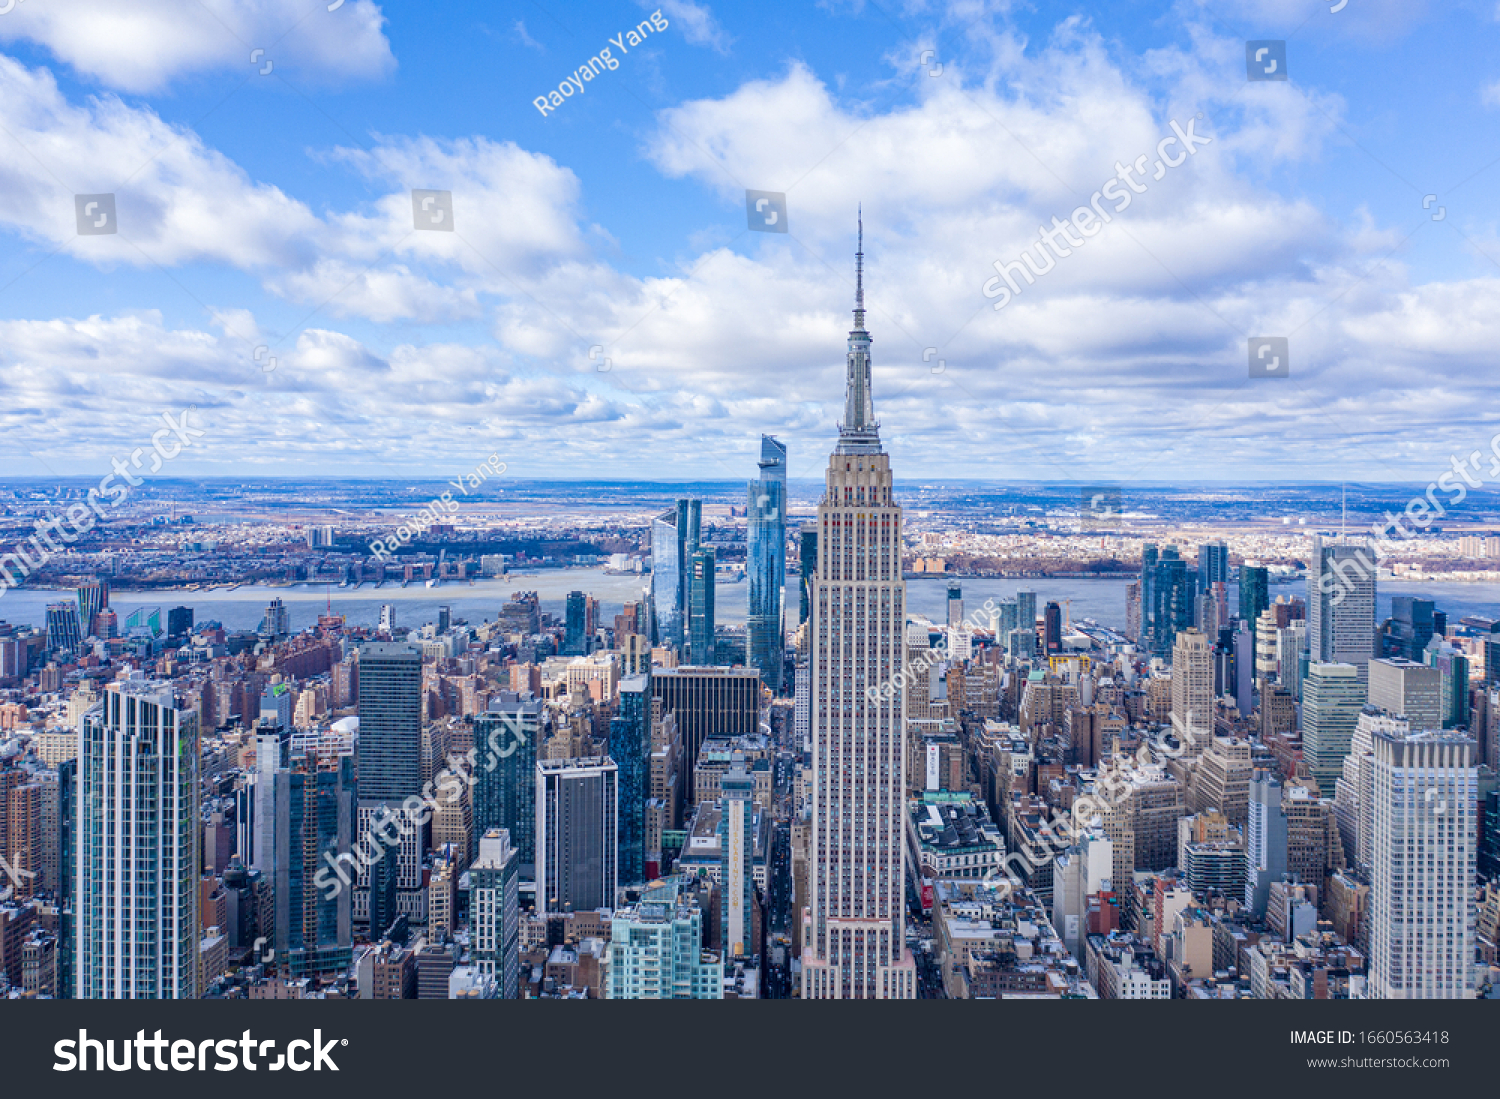 New York City Midtown Skyline with Hudson Yard in daytime, aerial photography #1660563418